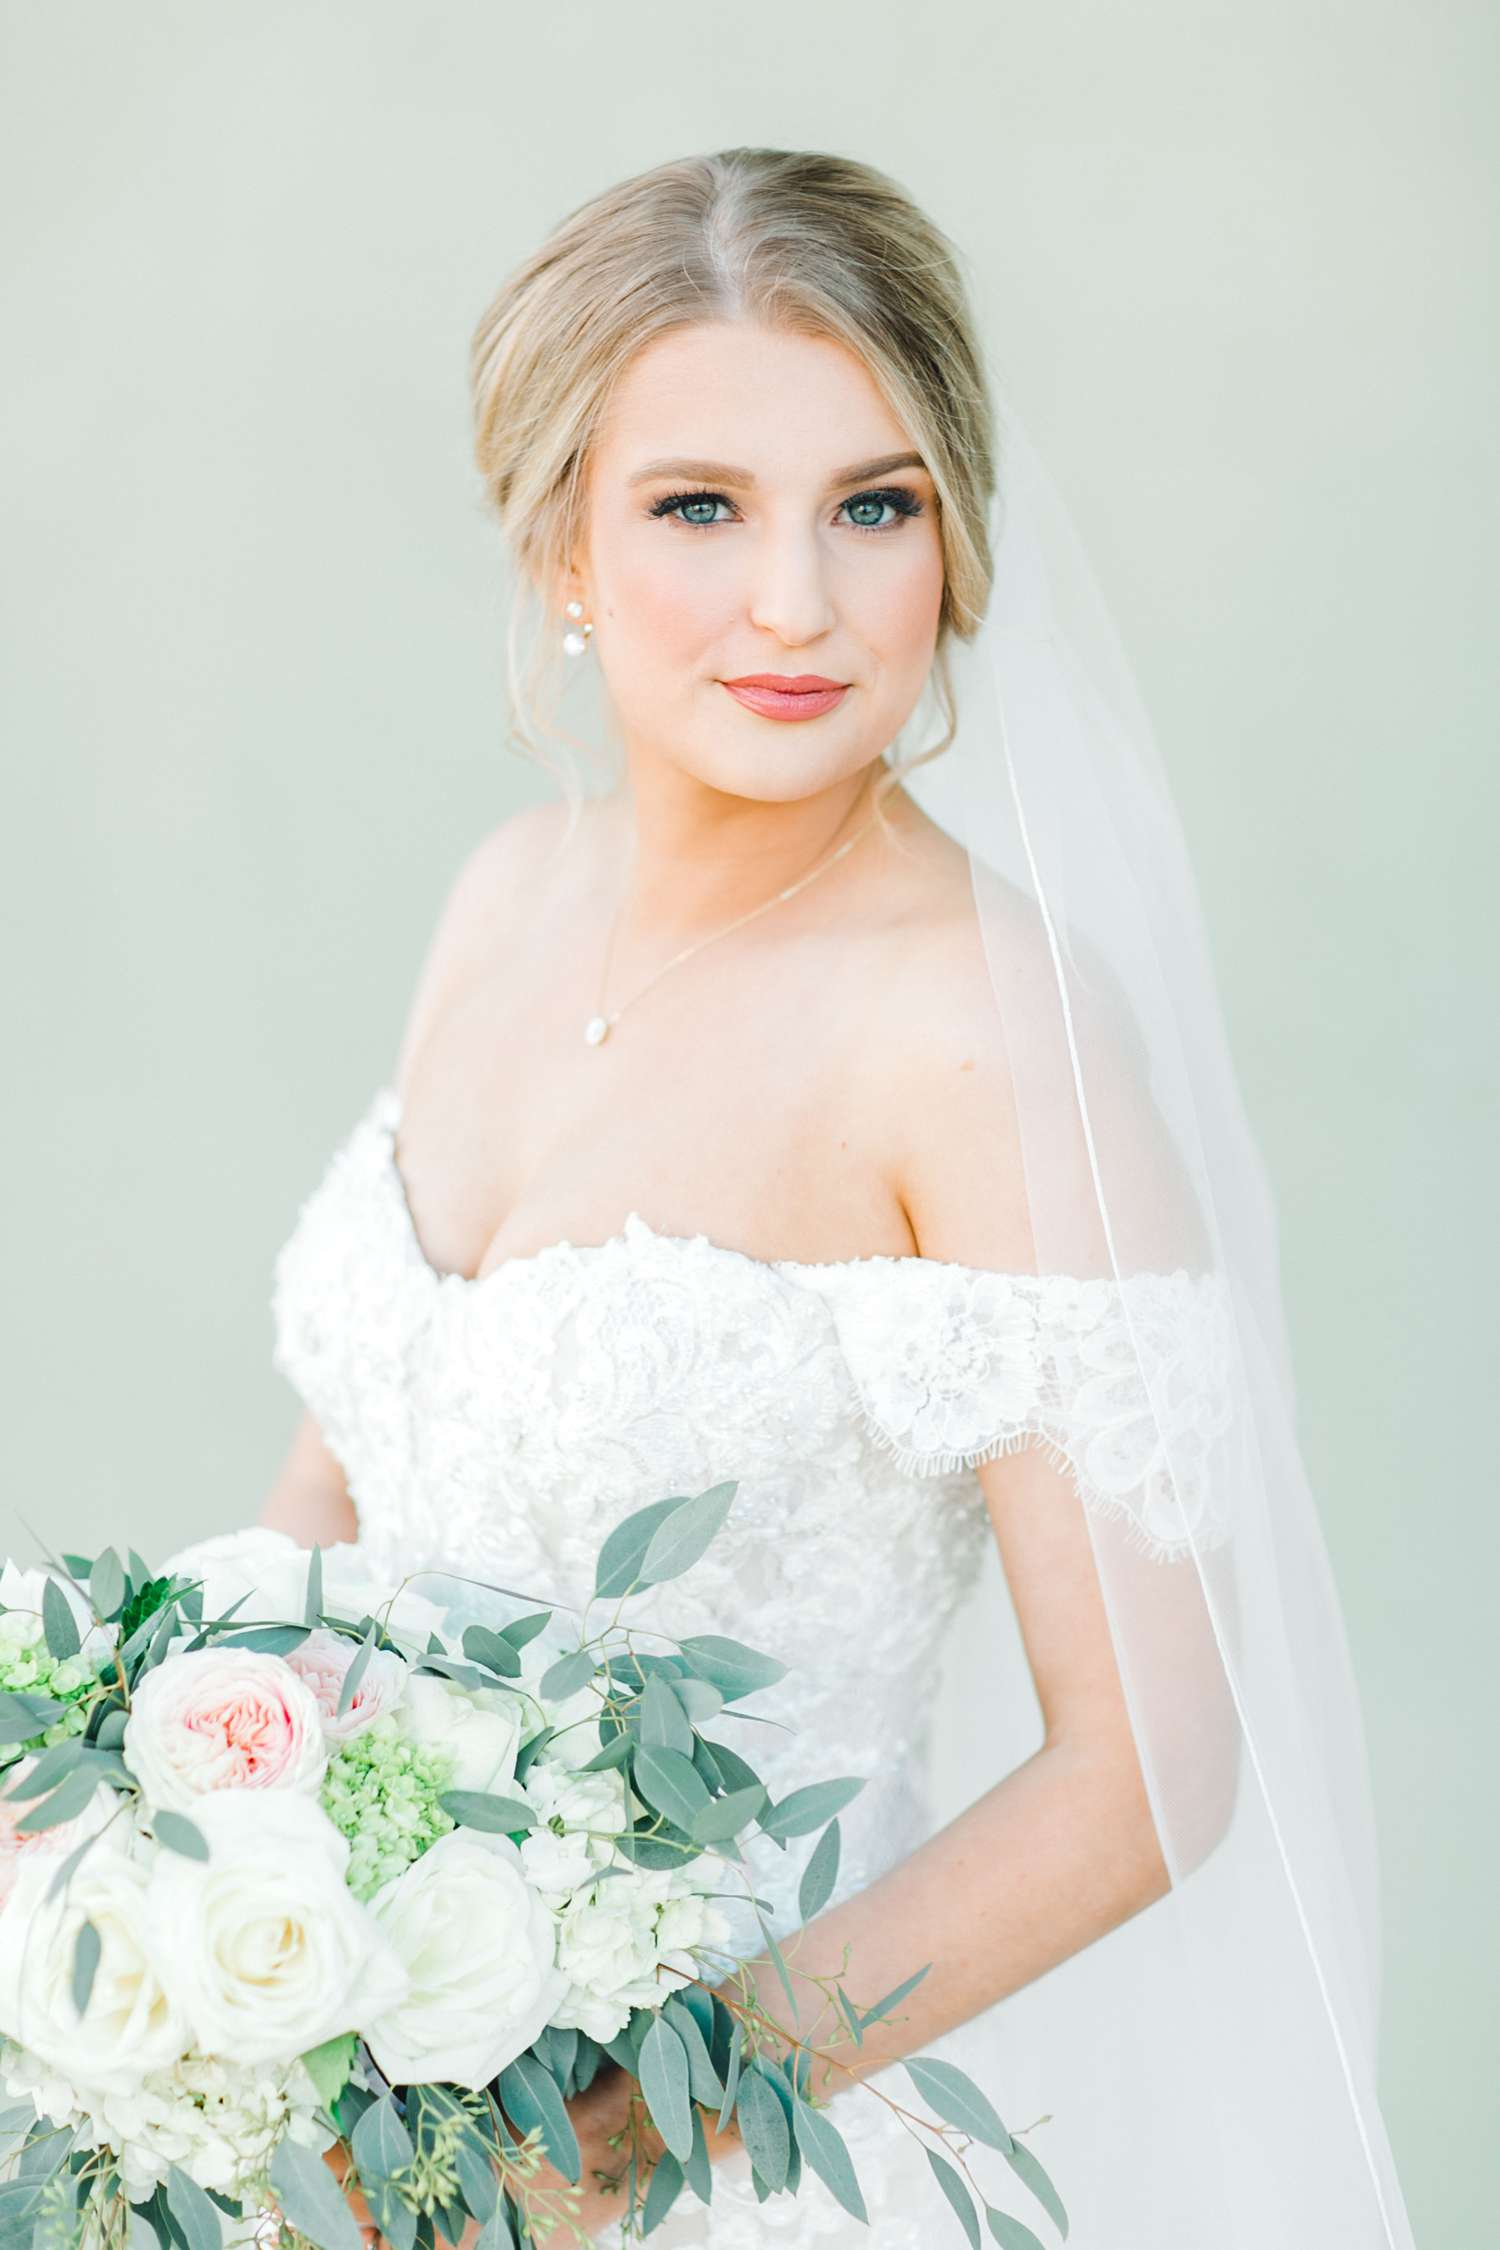 MORGAN+BOONE+BRIDALS+WEDDING+PHOTOGRAPHER_0024.jpg